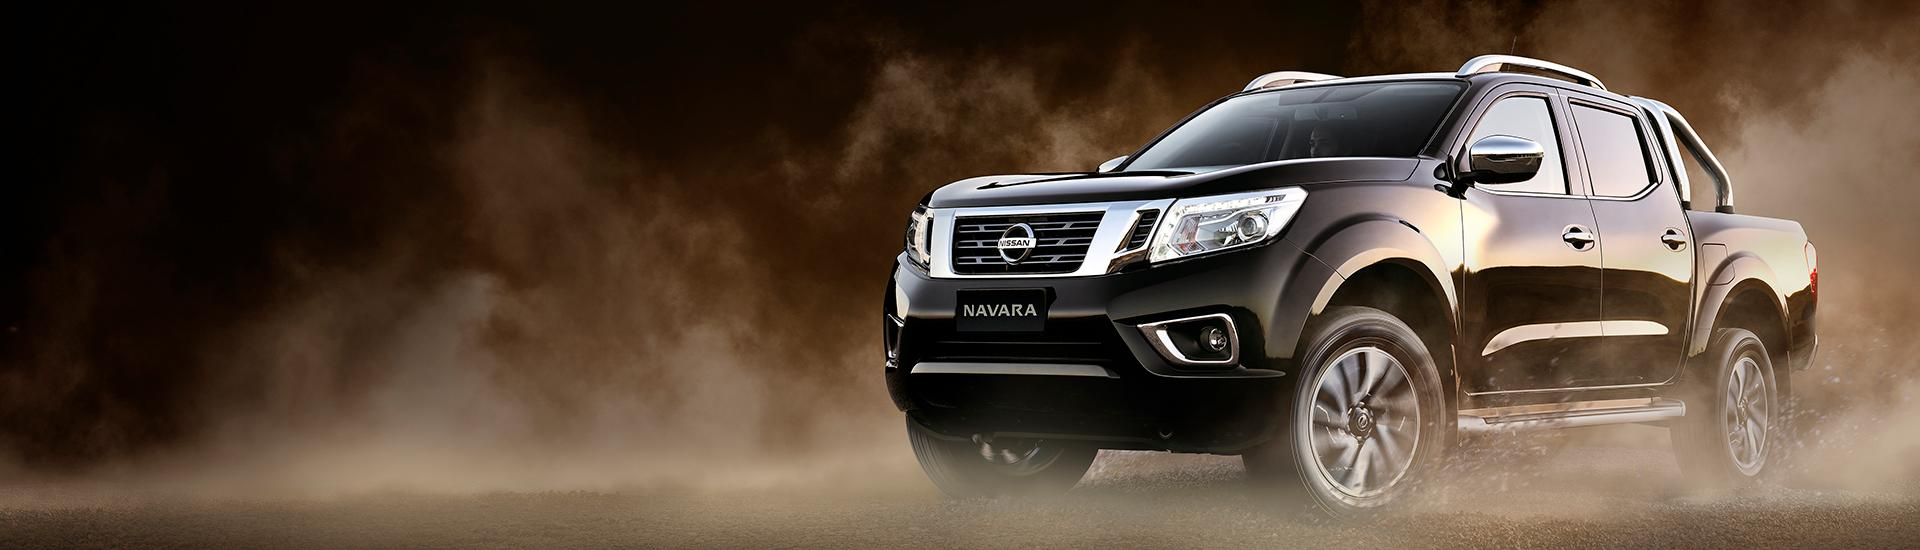 new nissan cars for sale in australia - carsales.au